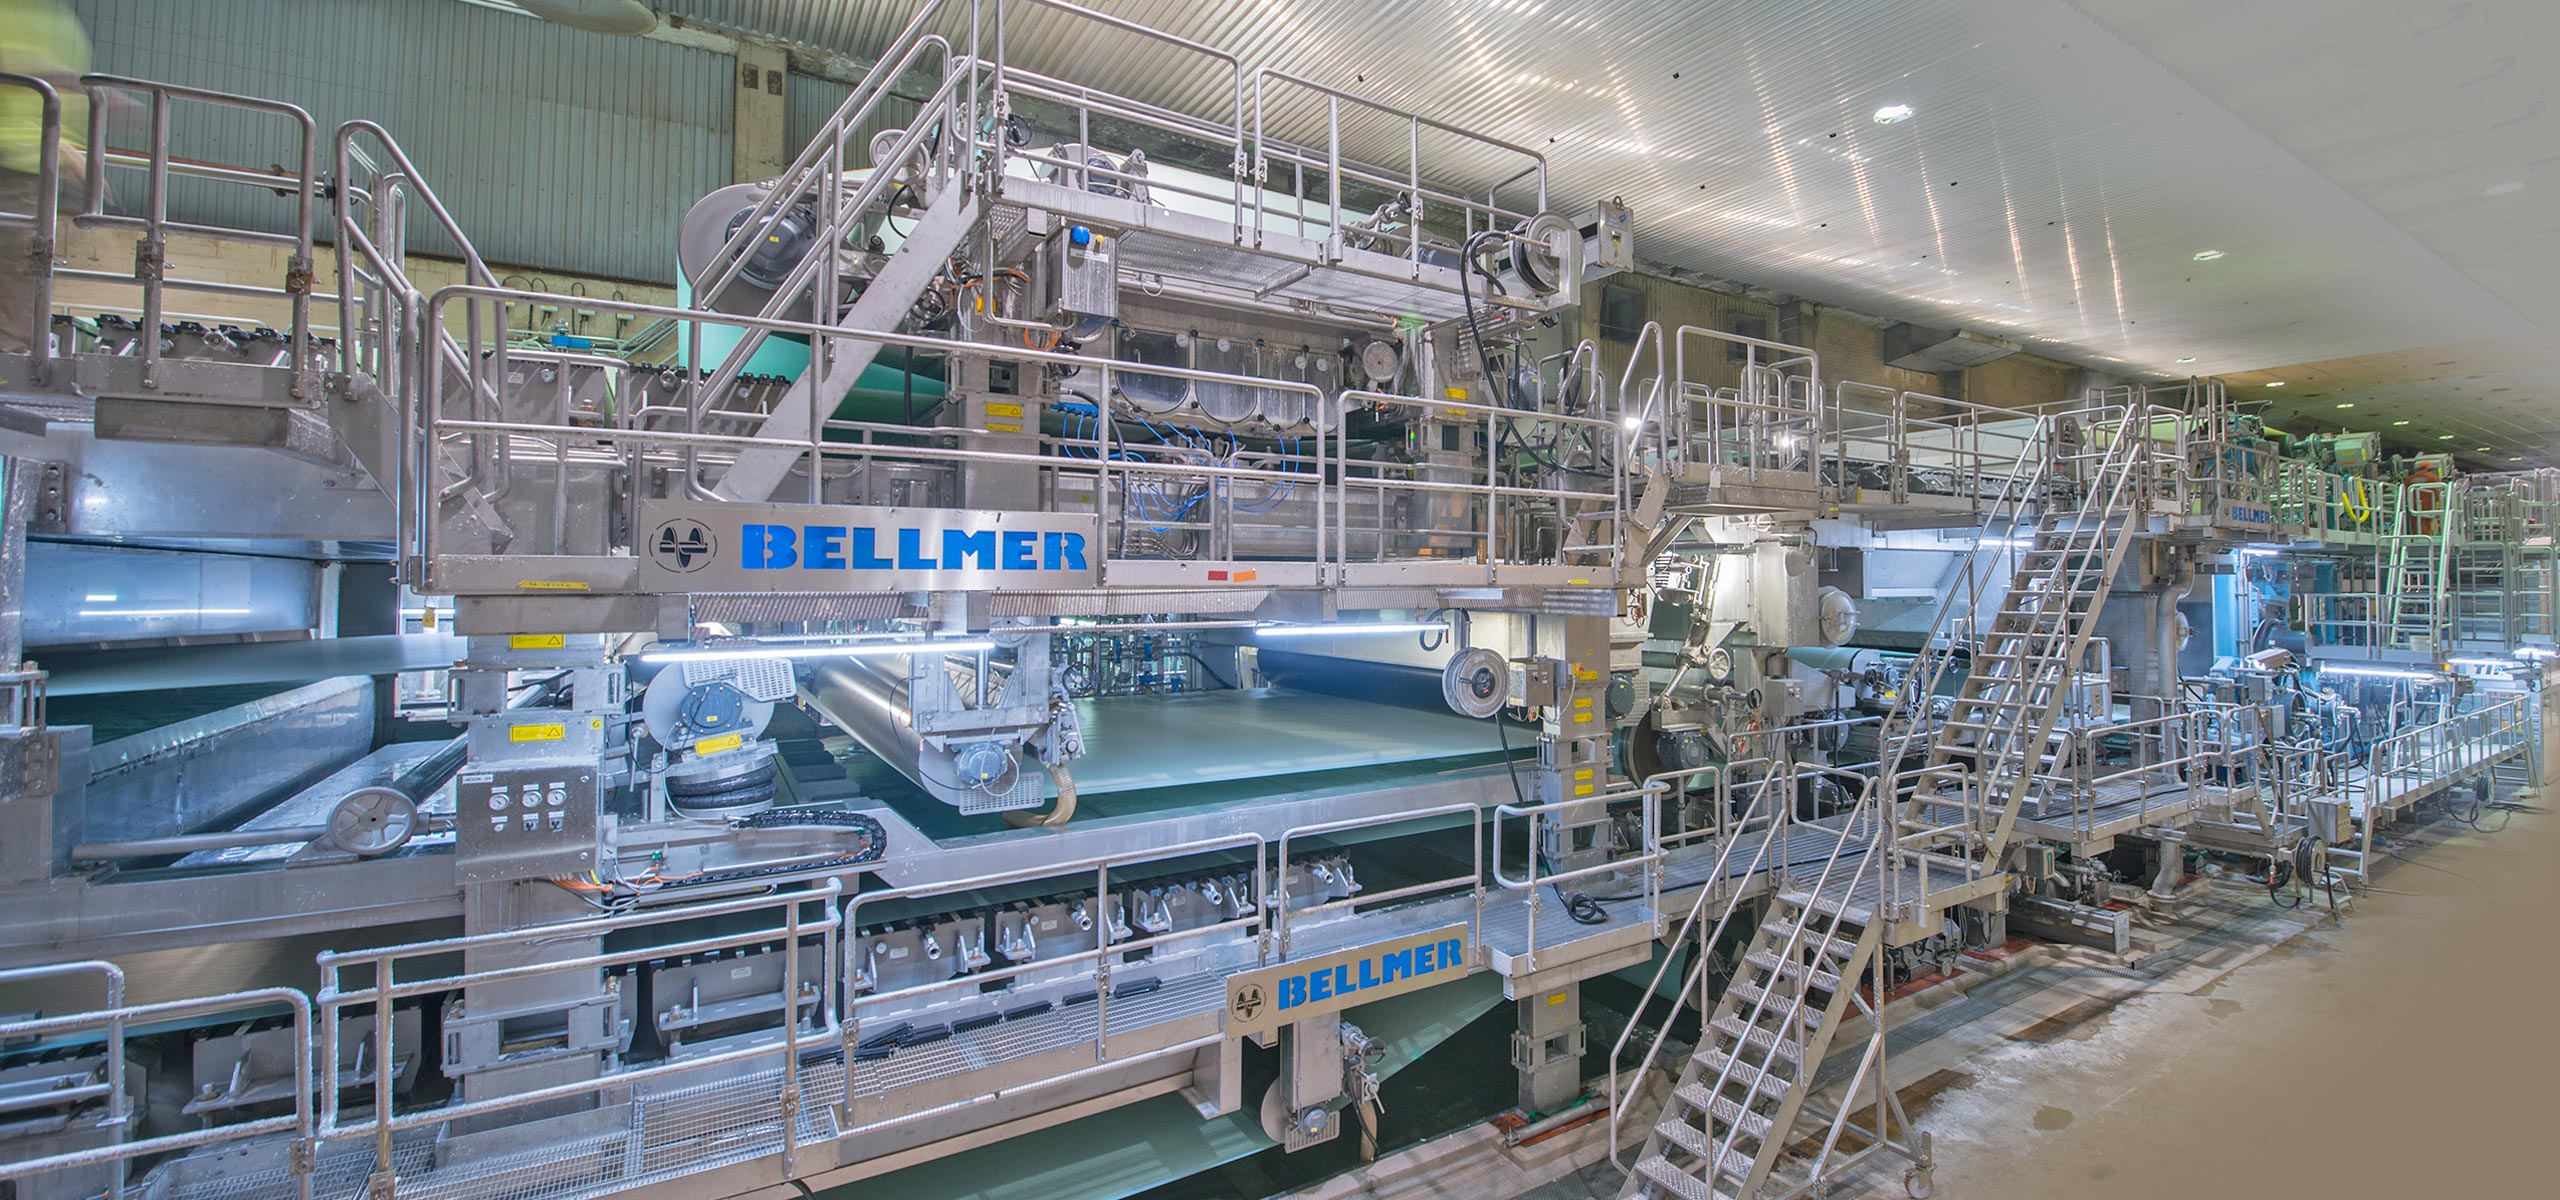 Bellmer Pulp and Paper machines